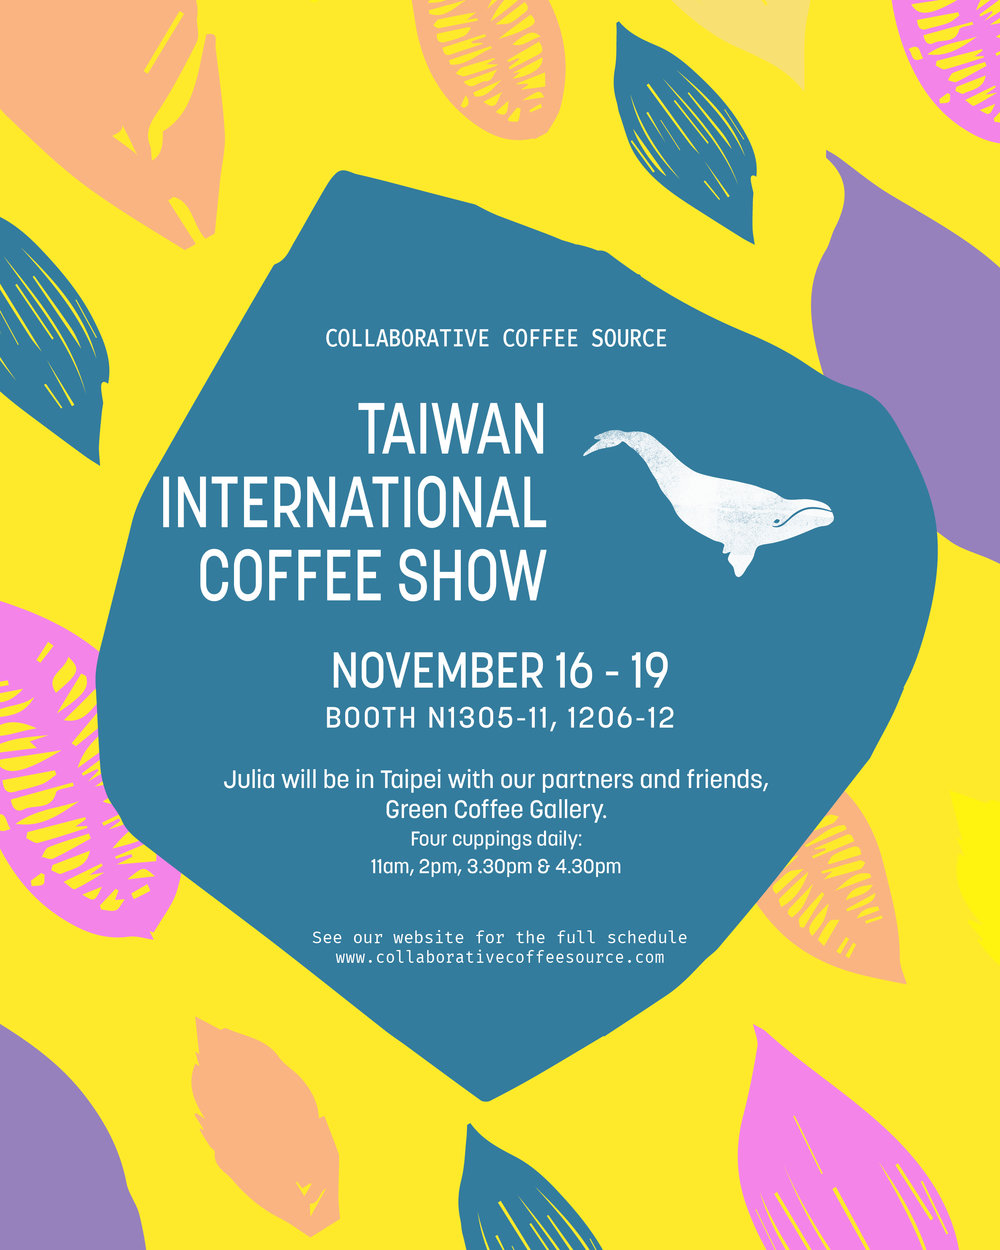 Taiwan International Coffee Show.jpg